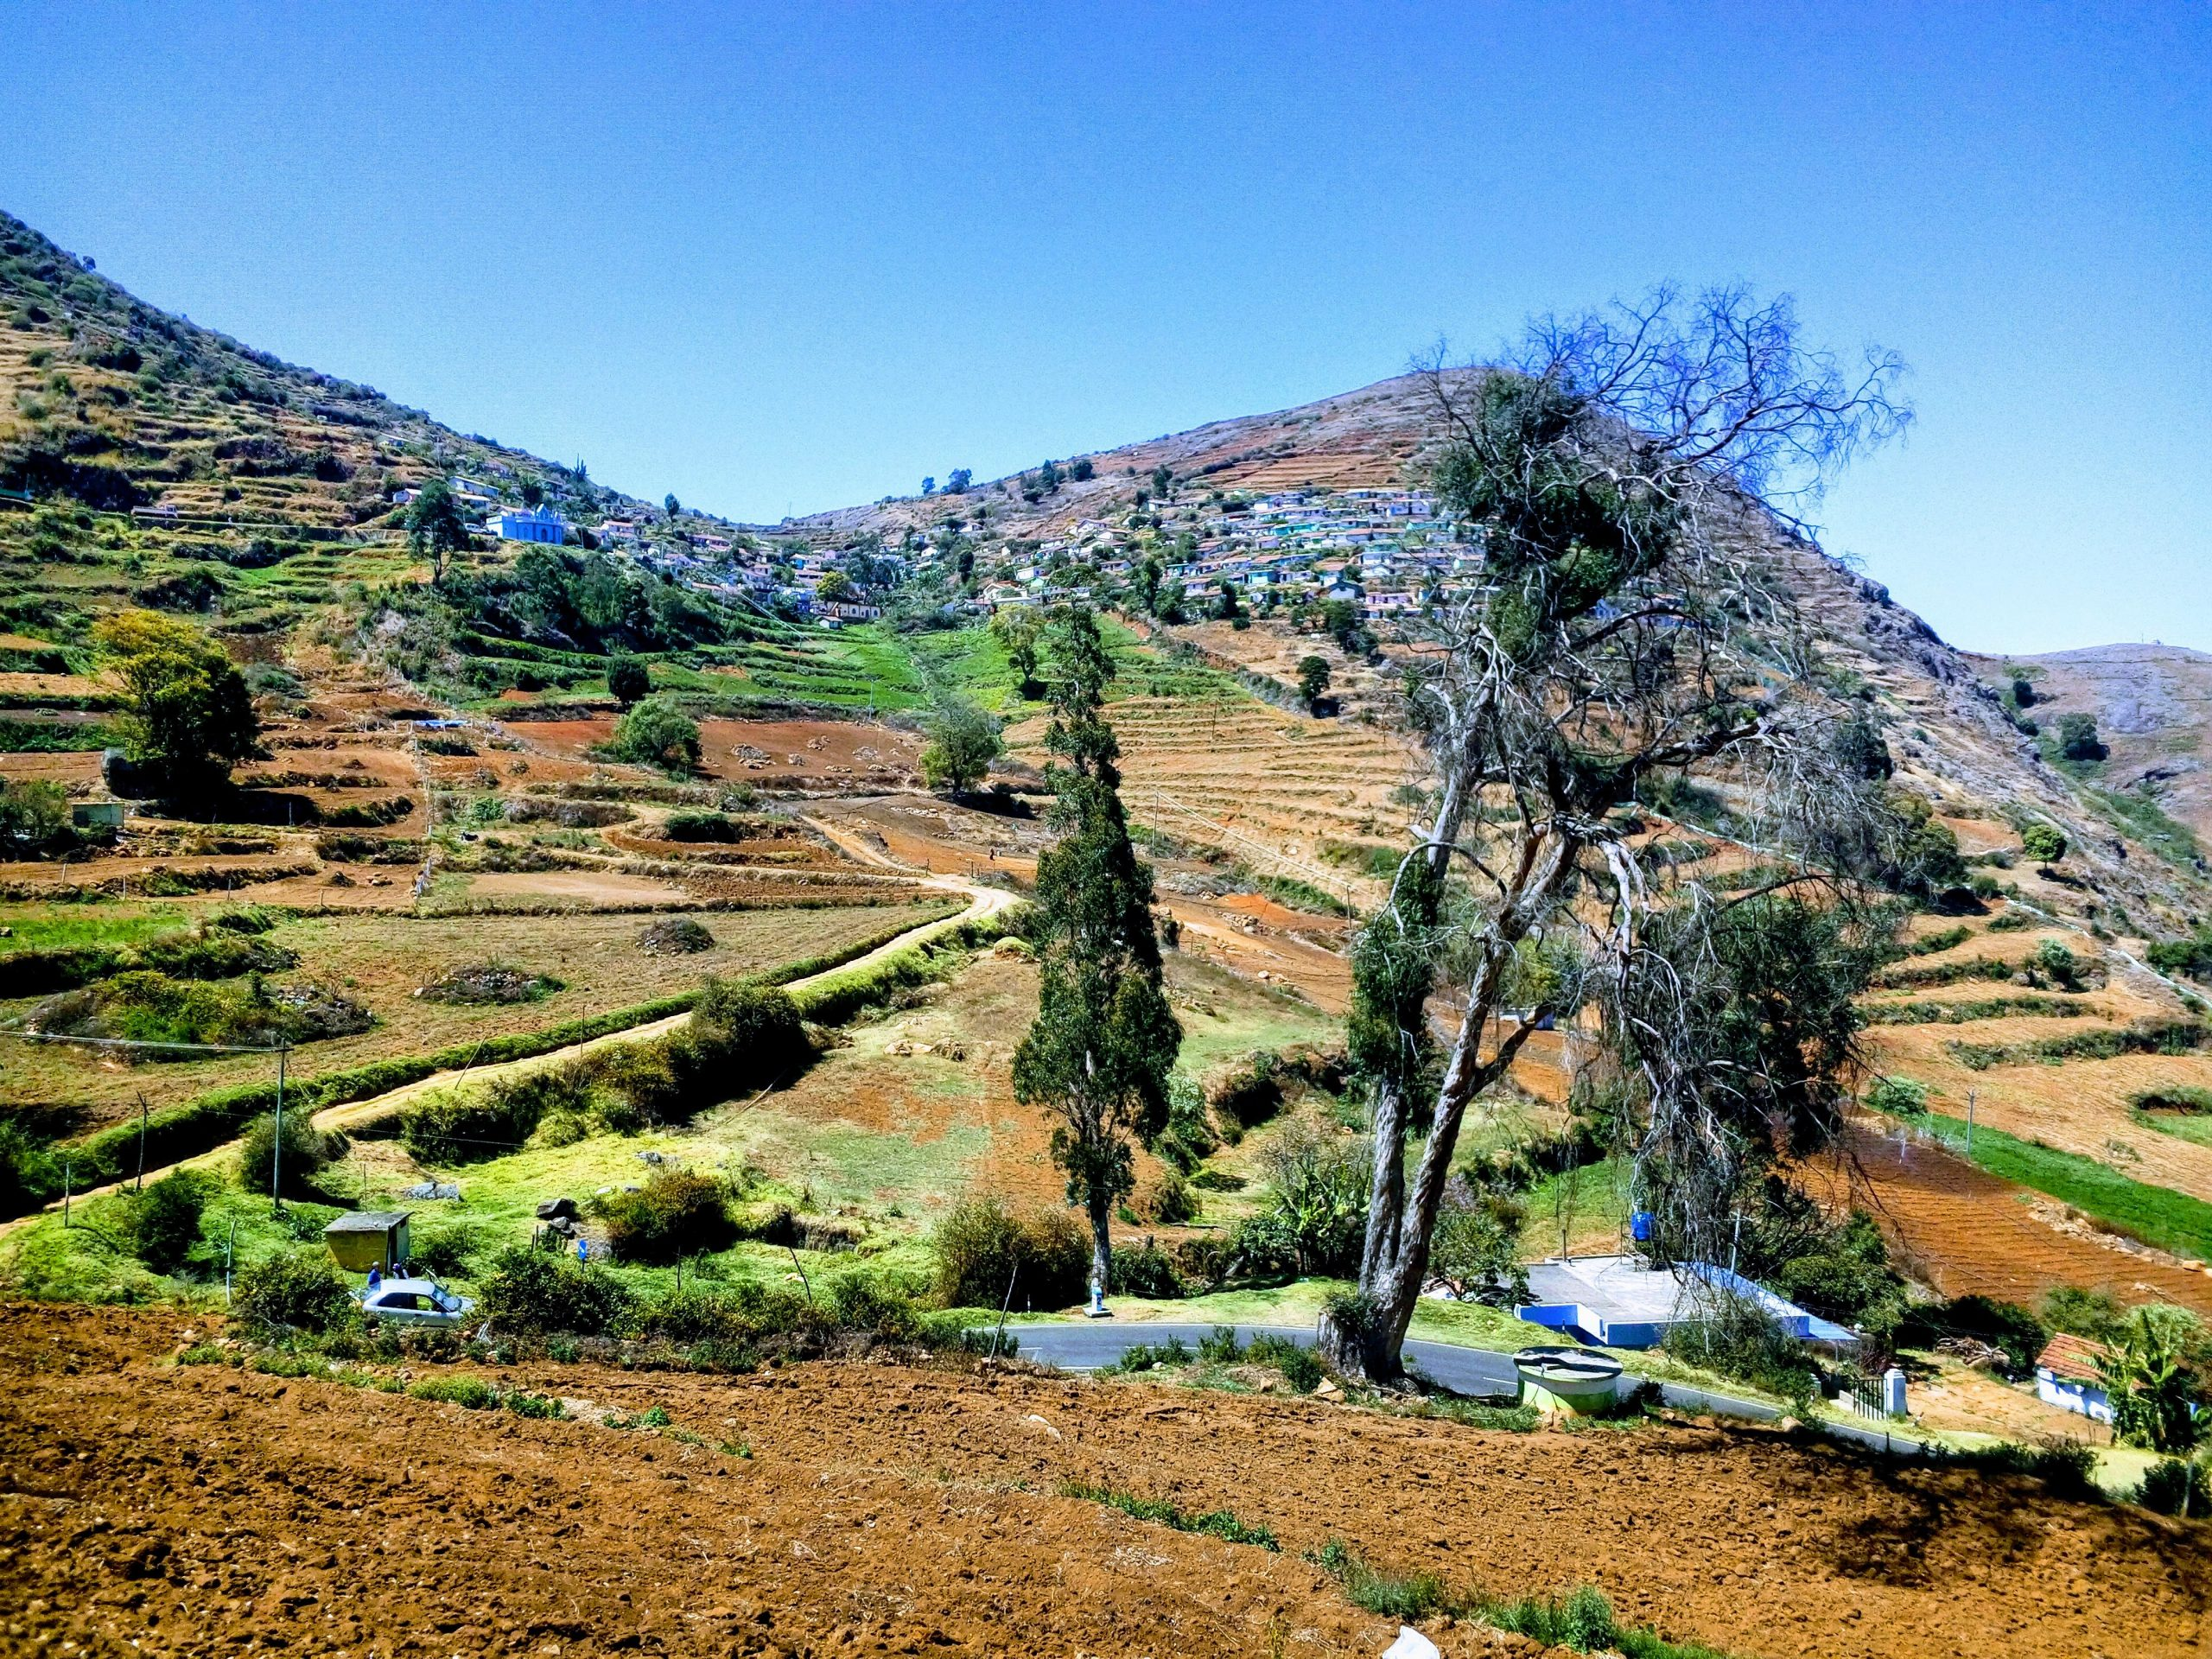 Hill station - Ooty